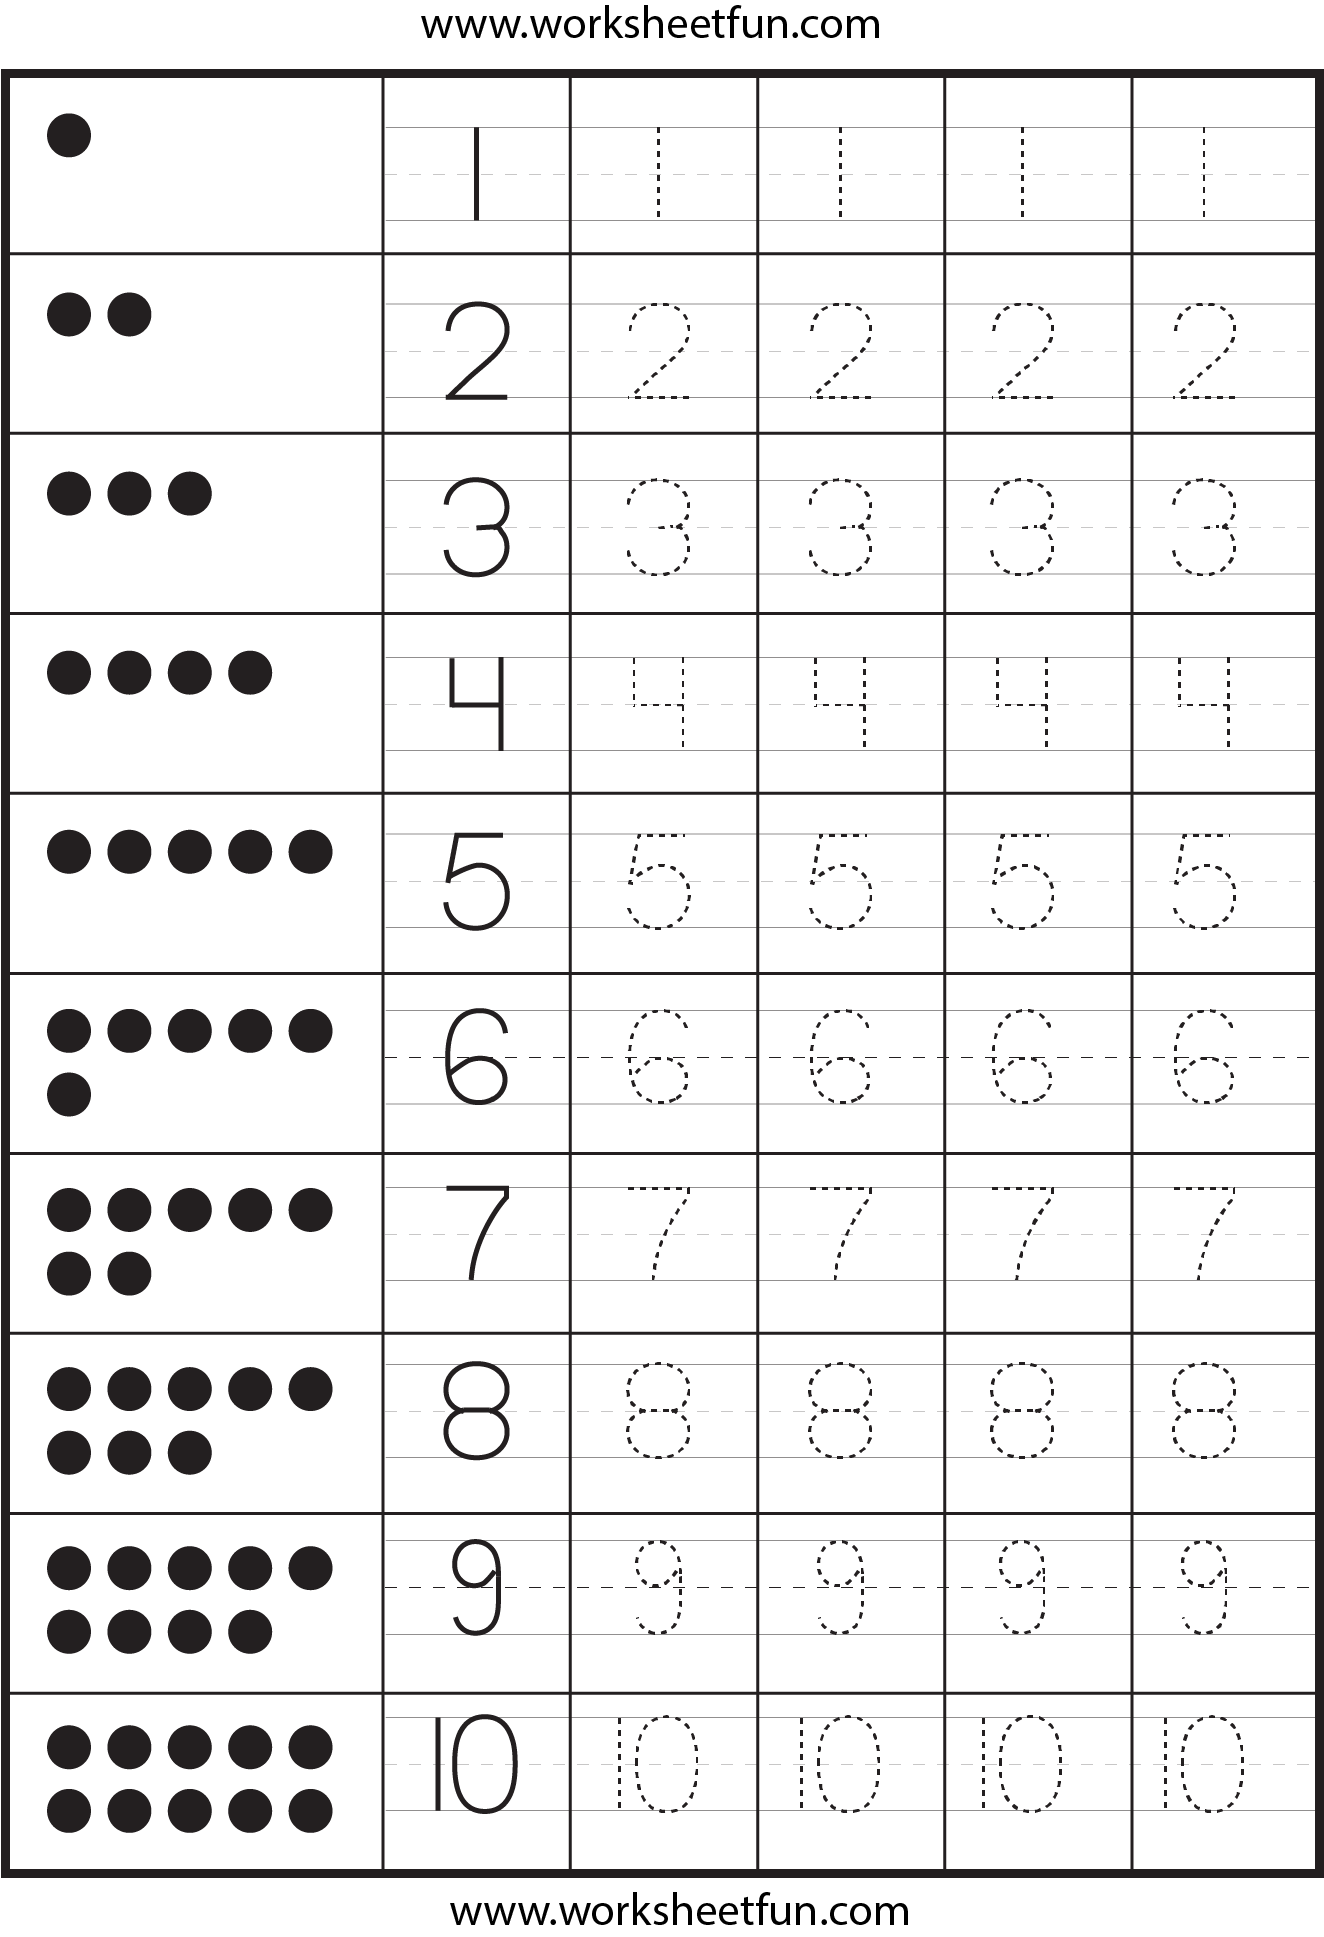 Worksheets Number Worksheets For Preschoolers worksheets for preschoolers numbers kidz kindergarten 7 best images of traceable printable